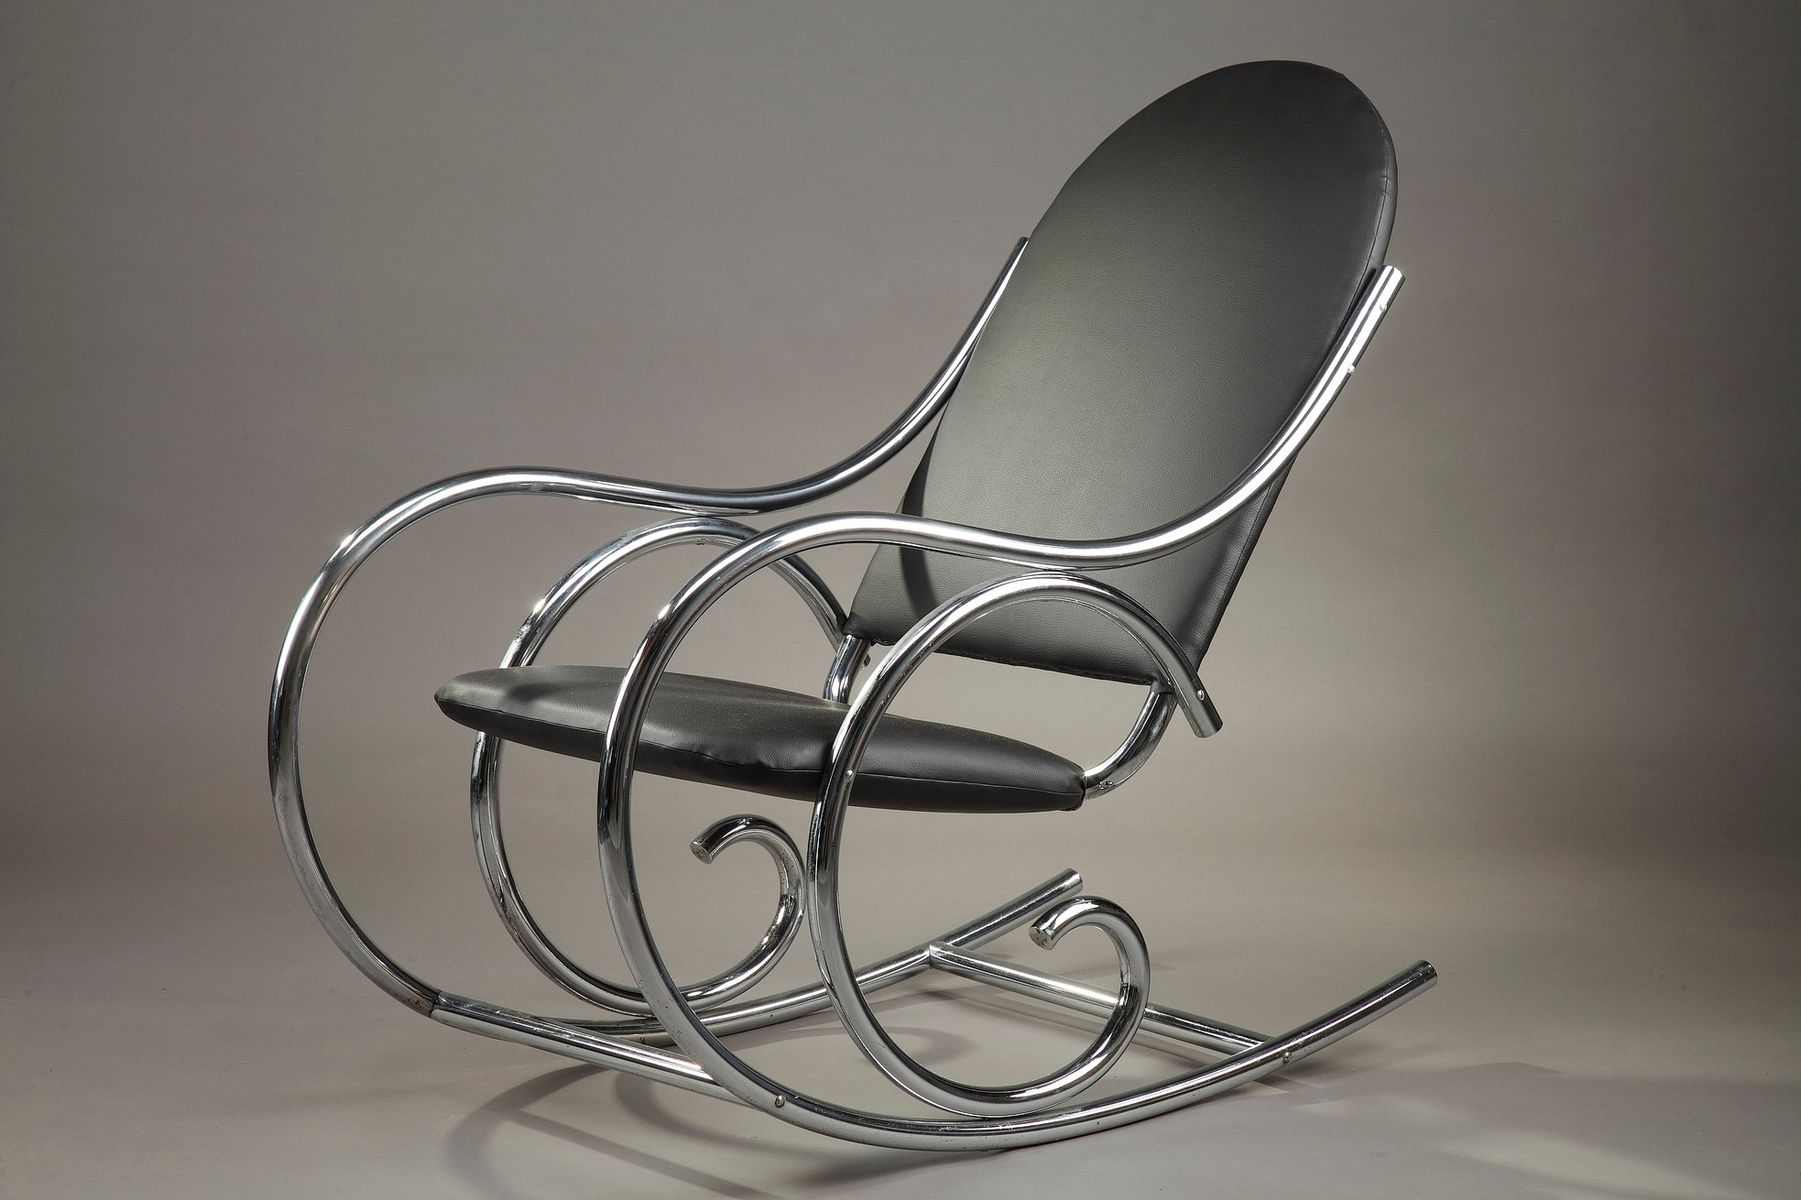 Metal And Leatherette Rocking Chair From Thonet, 1950s For Sale At Pamono